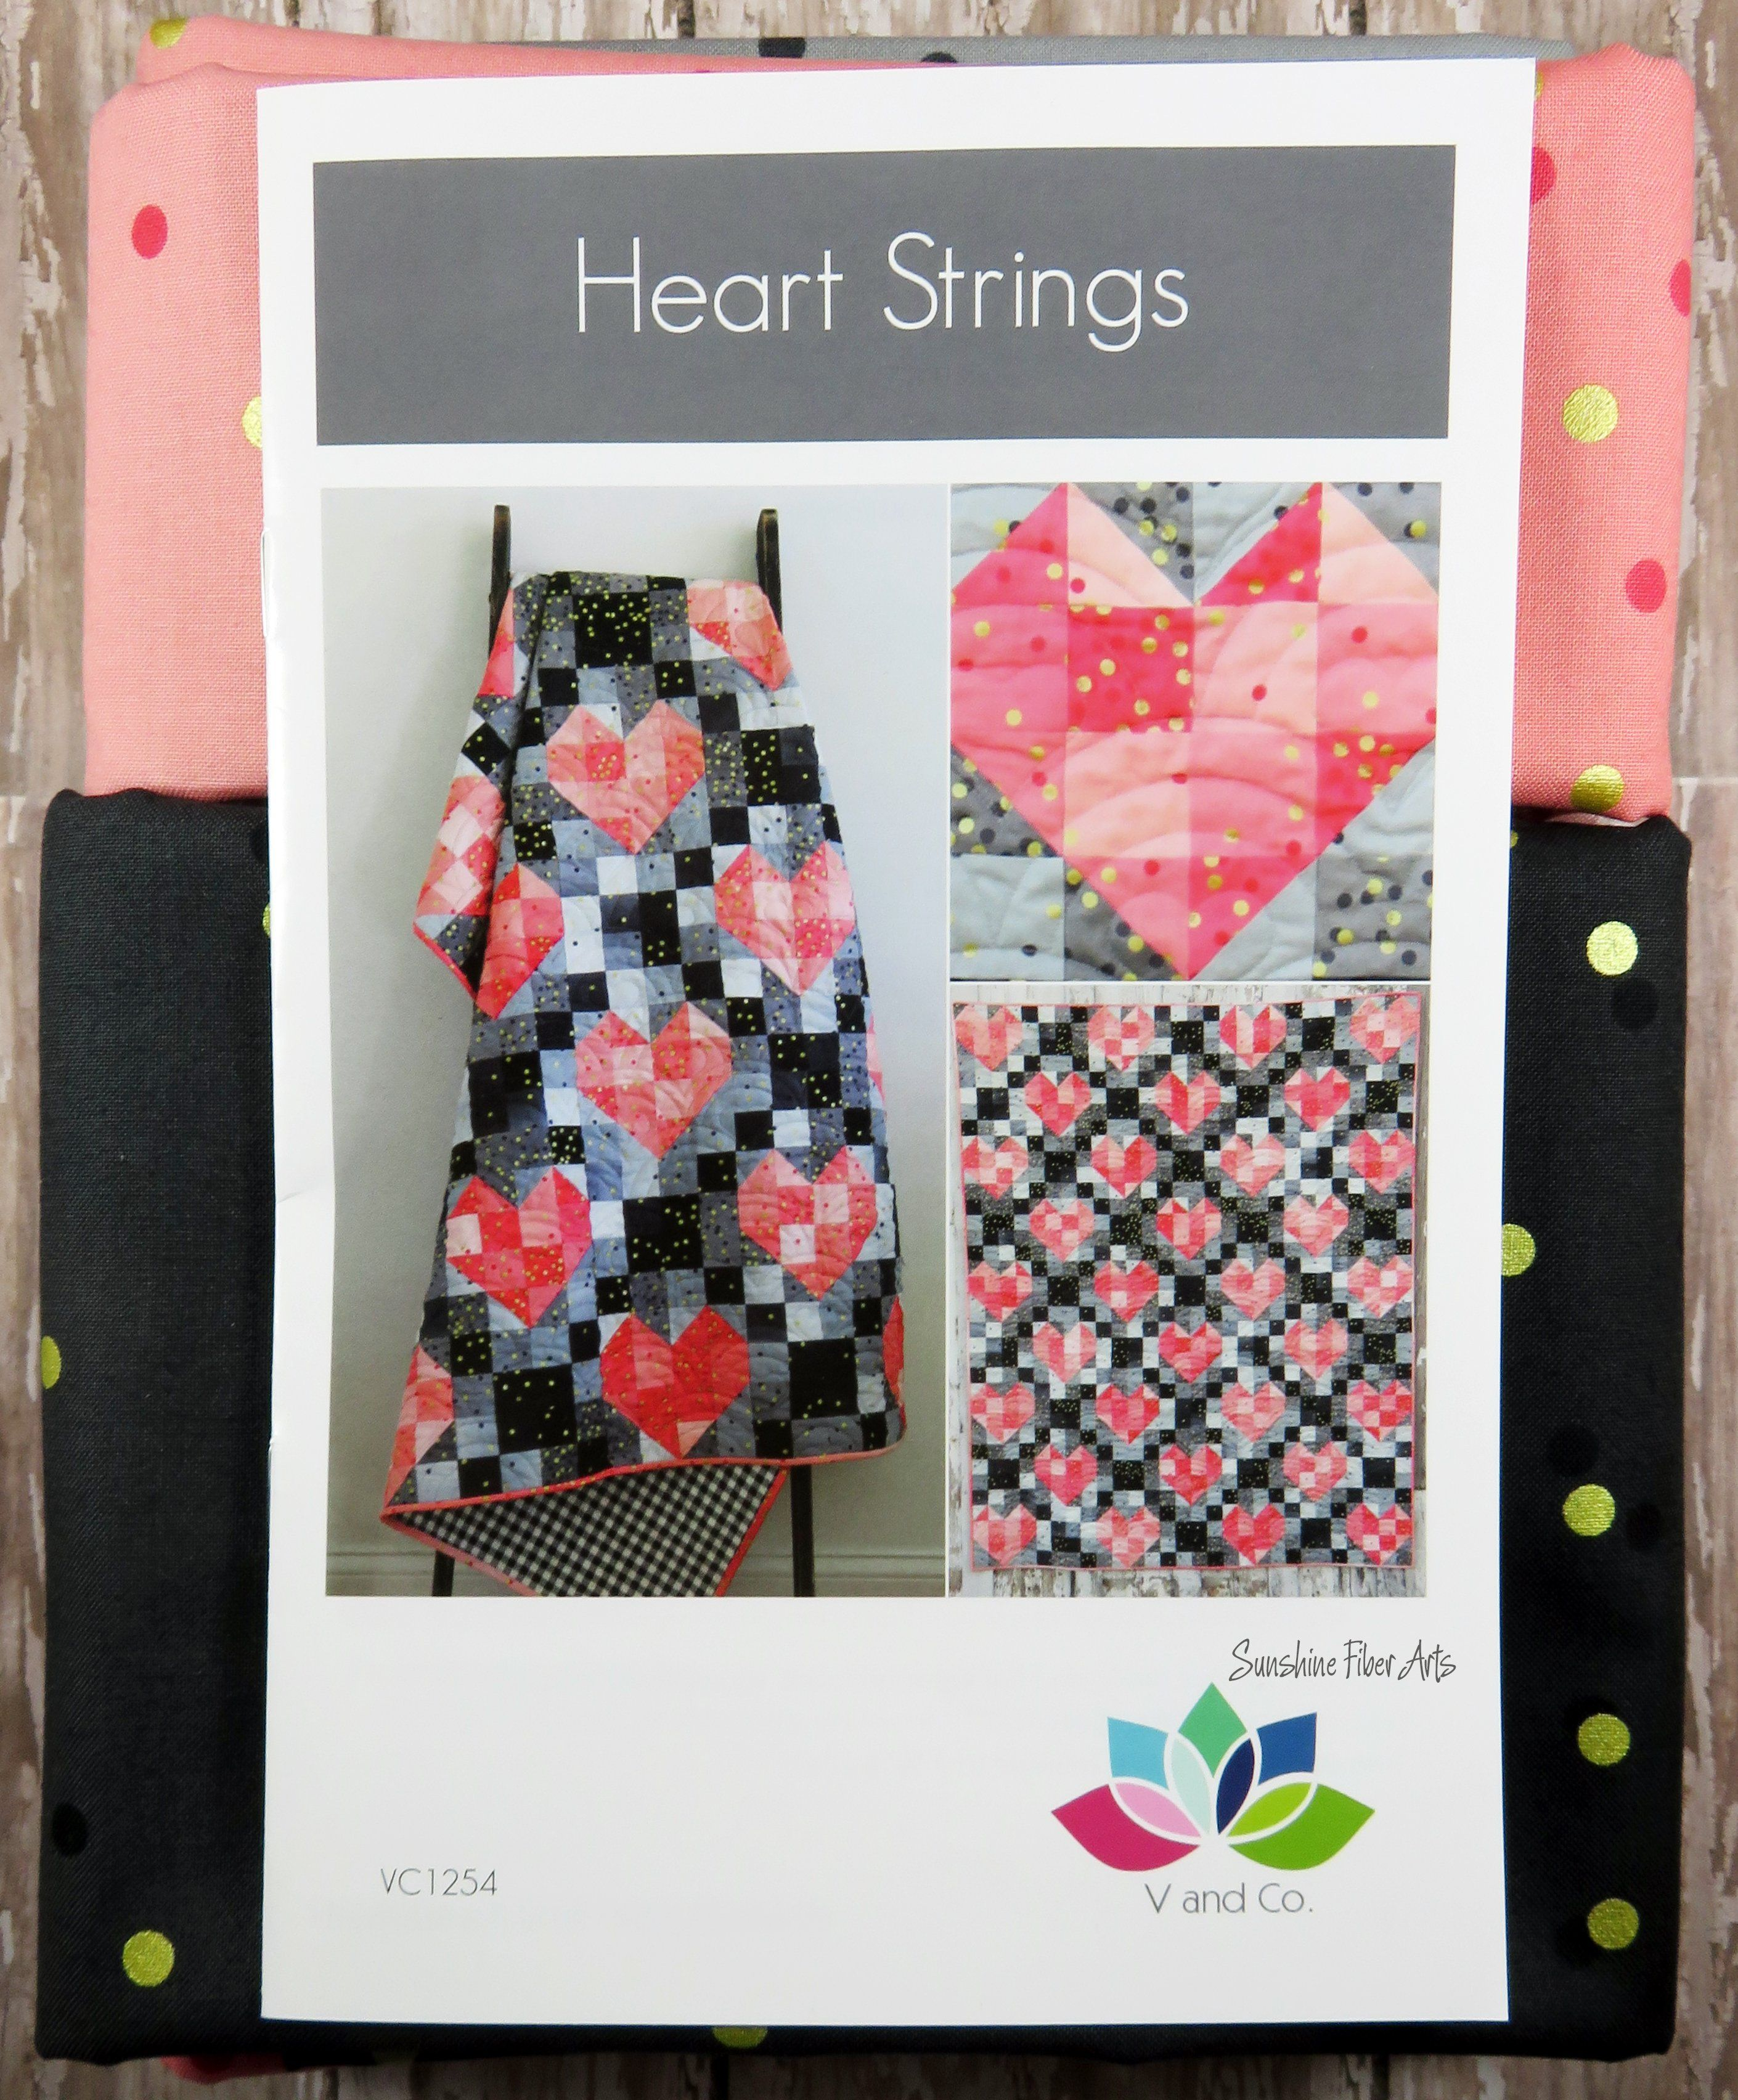 V and Co Criss Cross Applesauce Quilt Pattern ONLY by Vanessa Christenson using MODA Ombre Fabrics VC1232